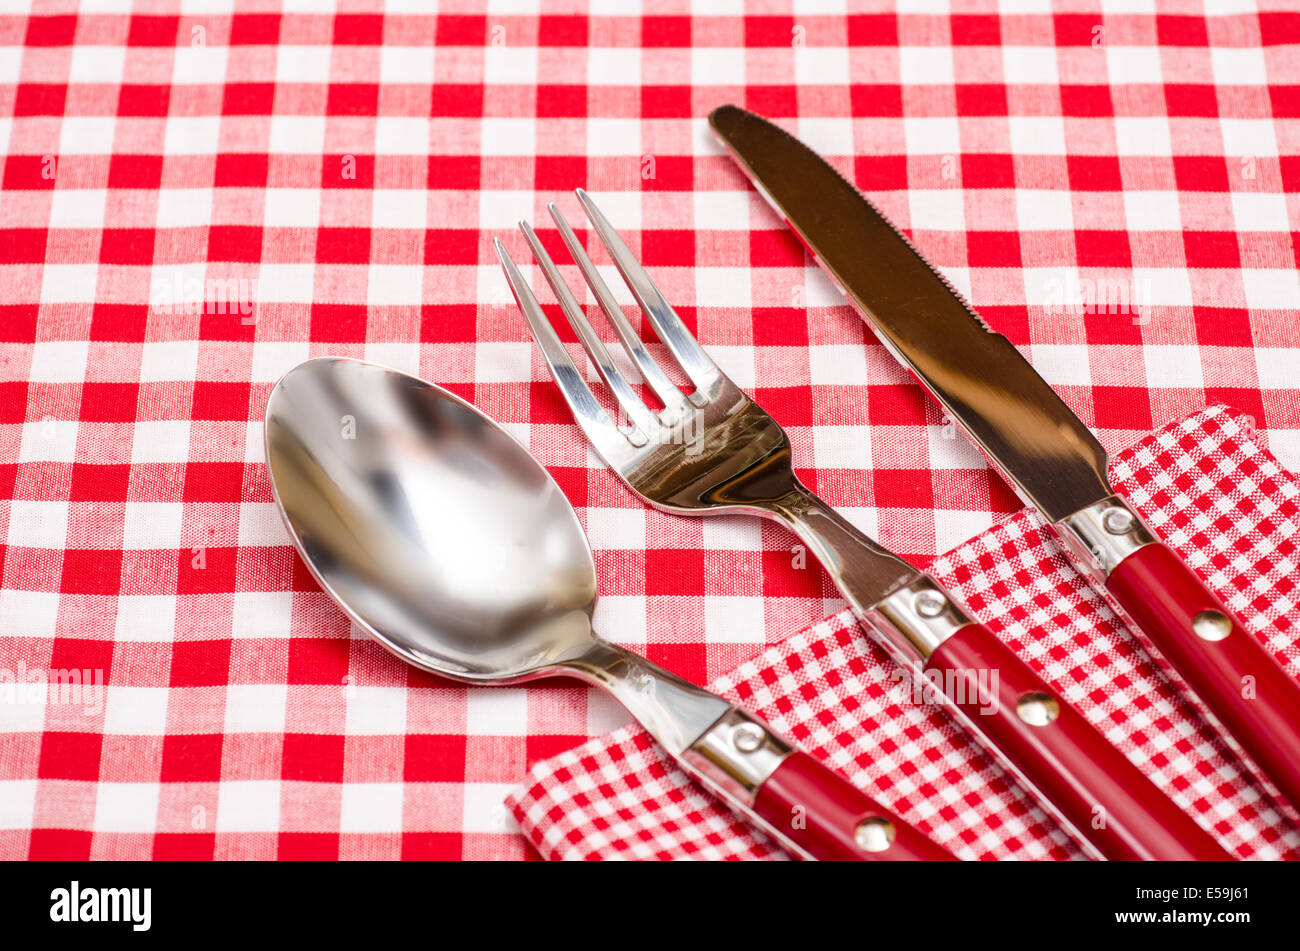 Red Silverware On A Red Checkered Napkin And Table Cloth